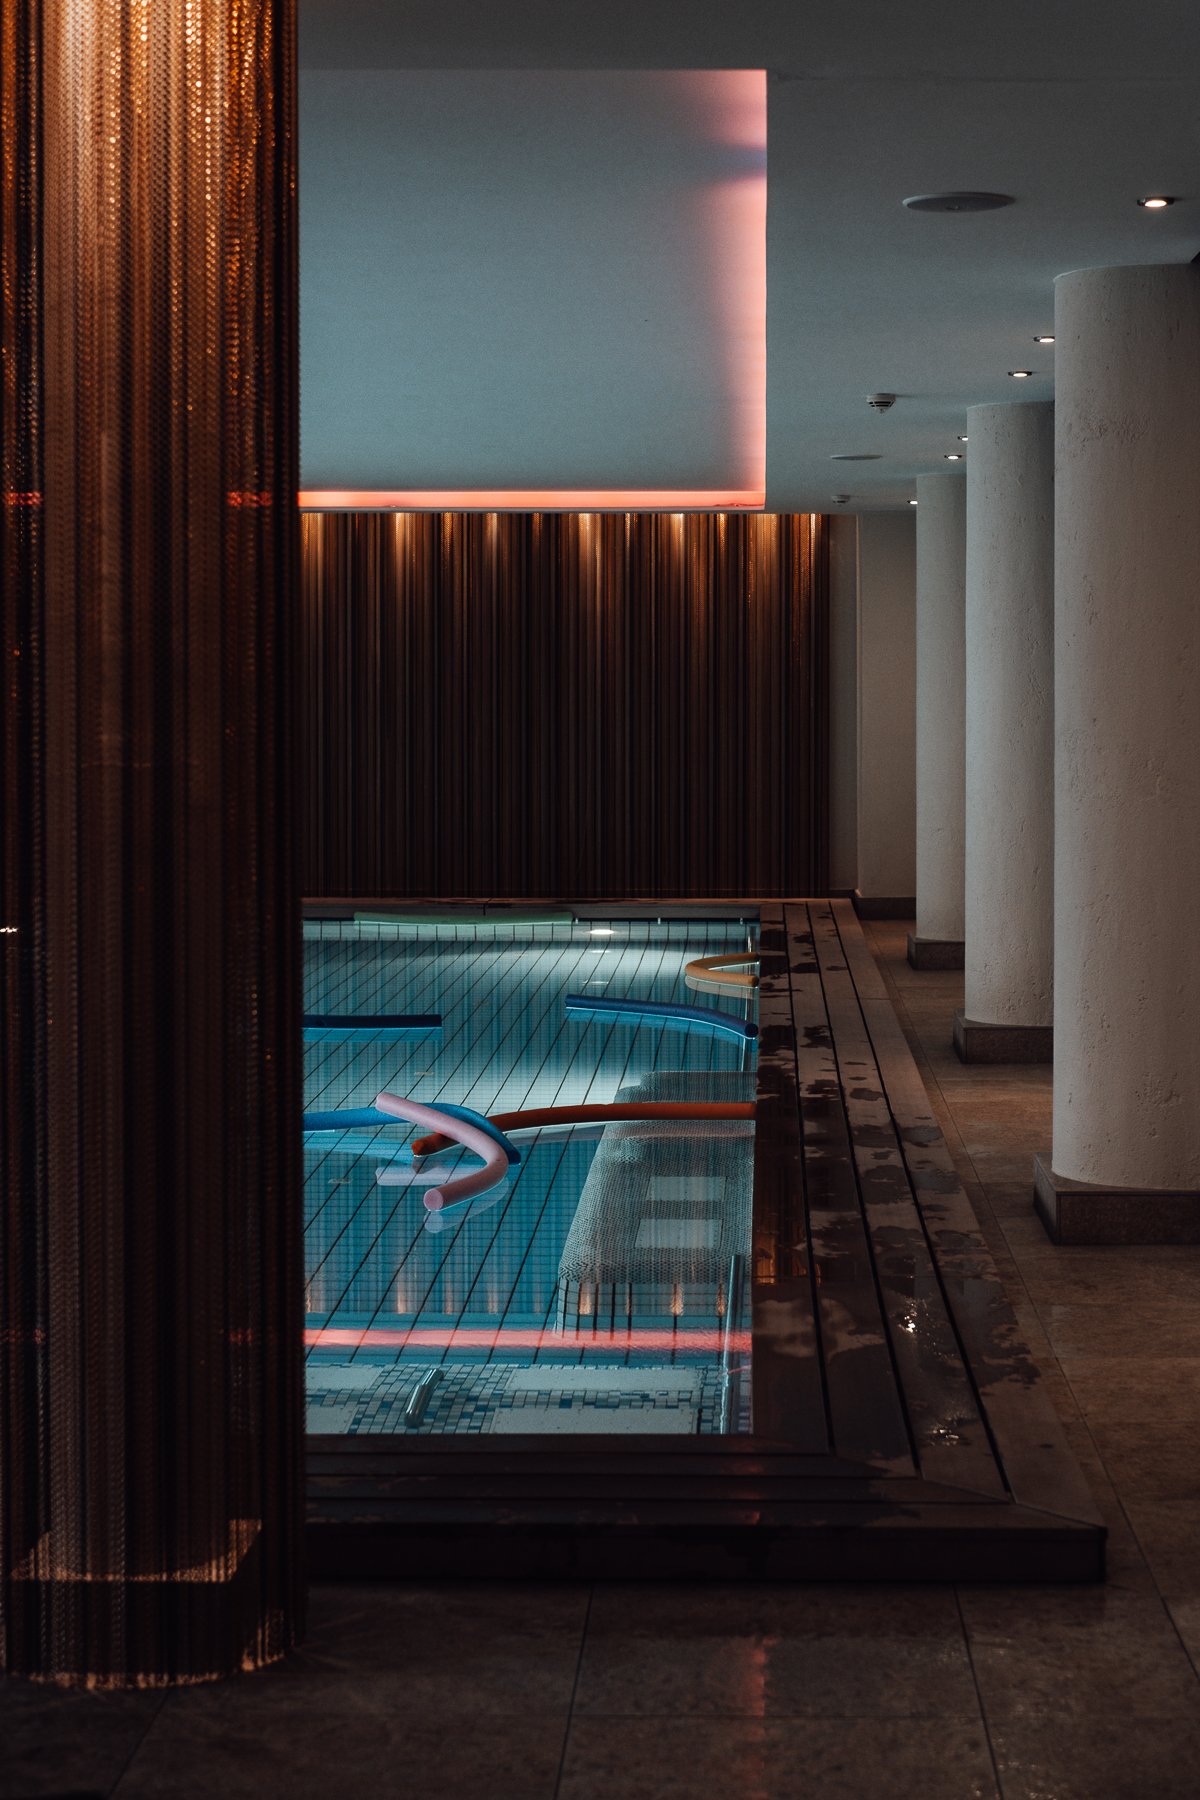 Bachmair Weissach SPA Hotel - Fujifilm XT3 - Yes! Please Enjoy by Fanning Tseng-17.jpg